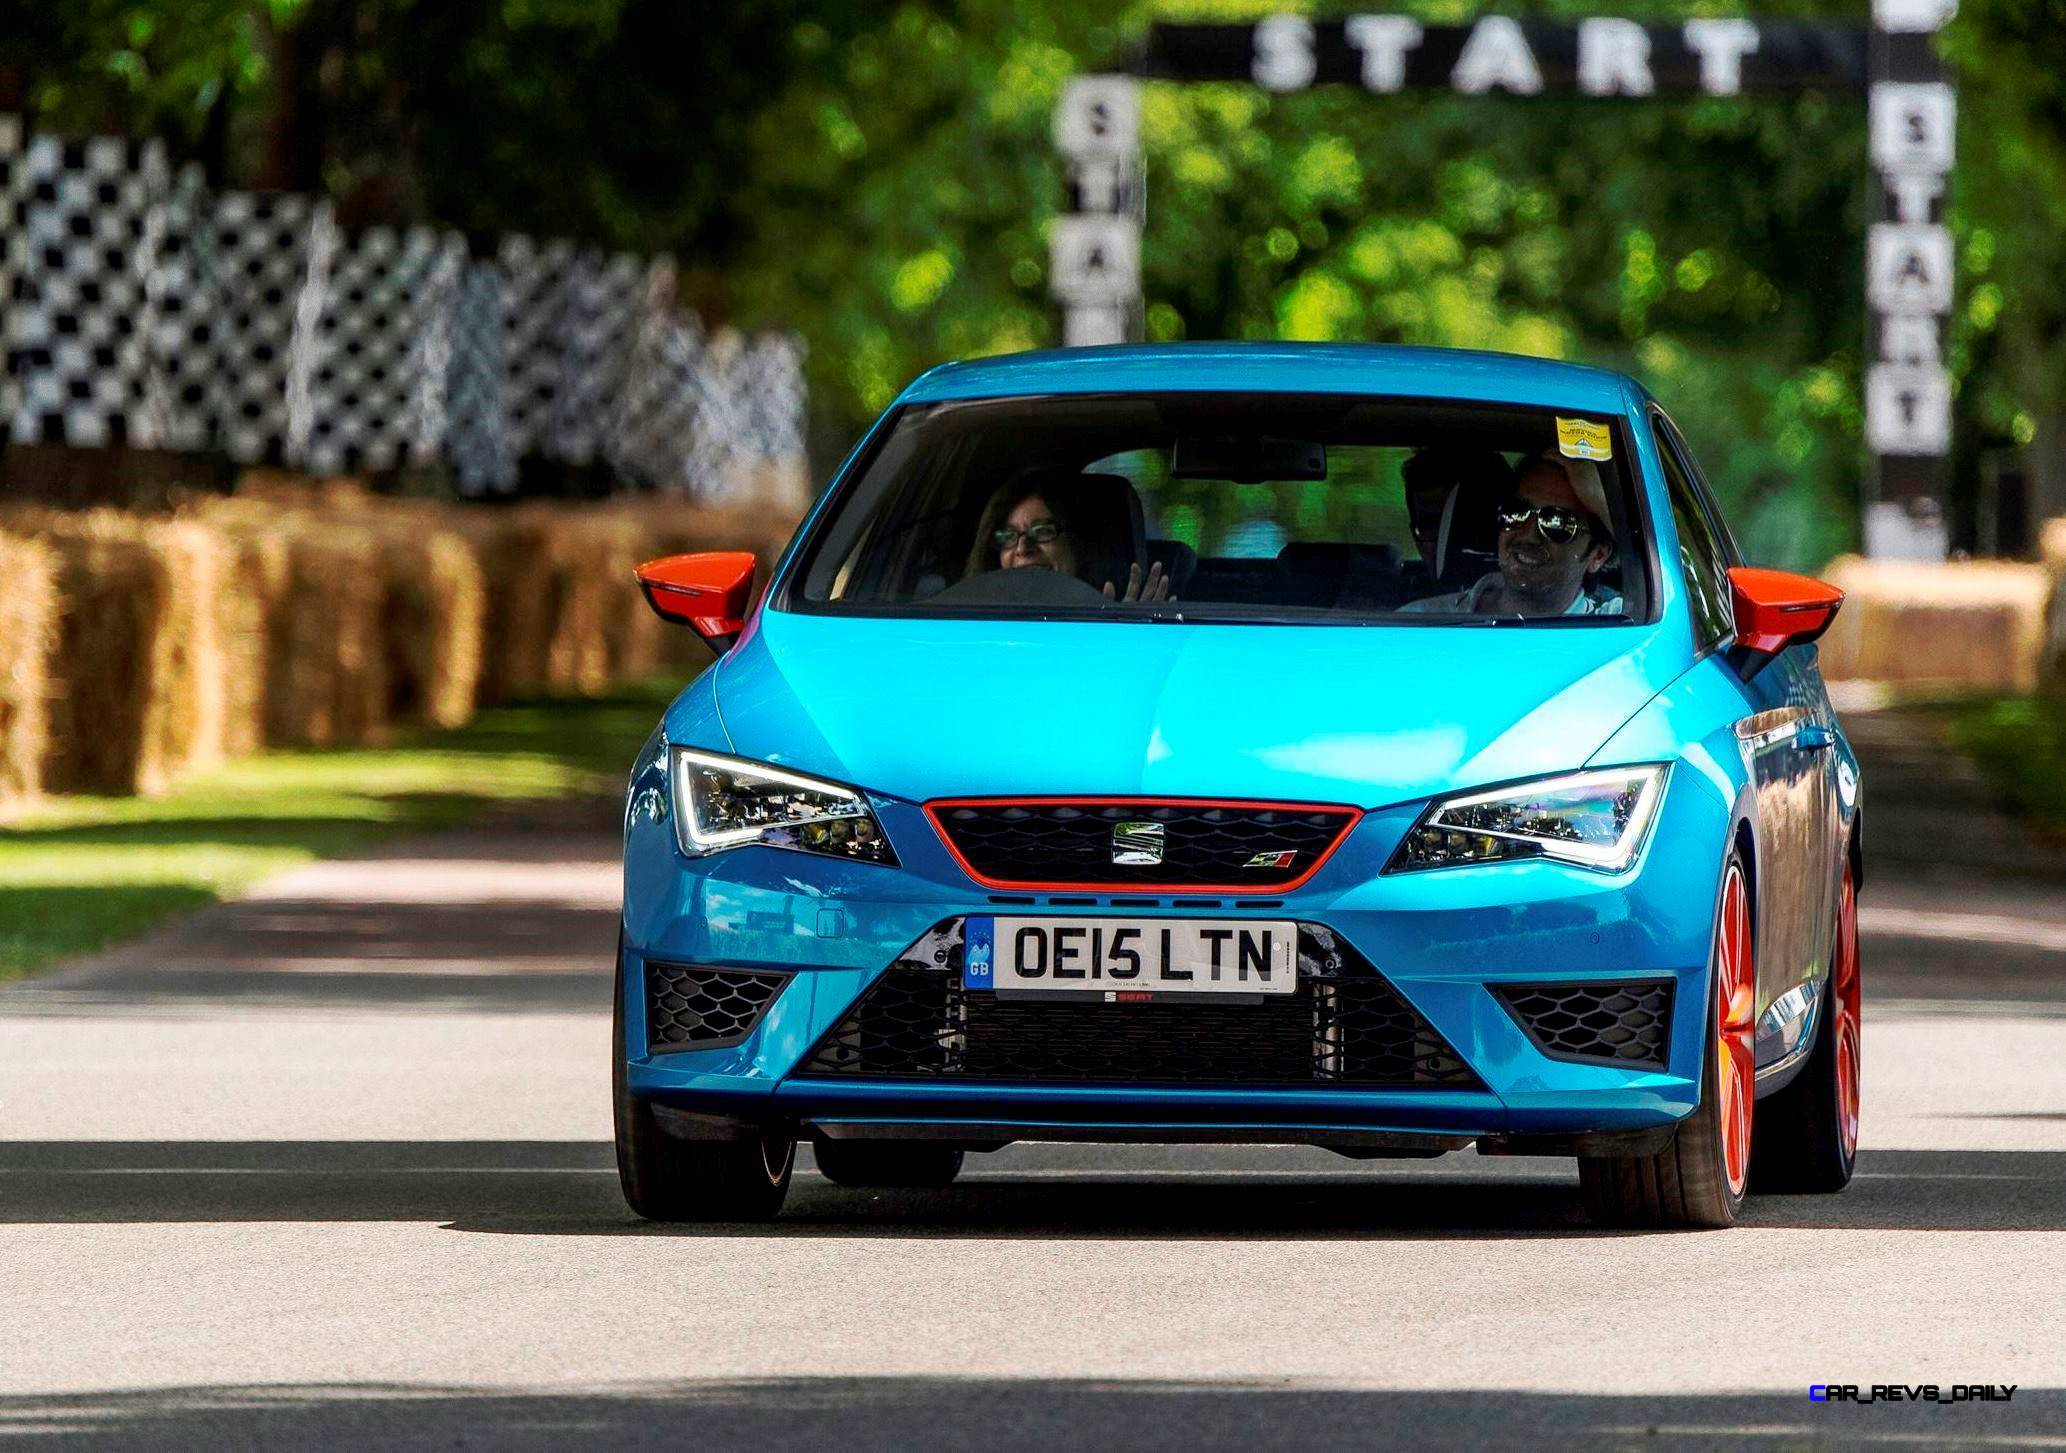 goodwood festival of speed dates 2015 The goodwood festival of speed starts today so we thought we would take a look back at its history and find out why it has become such a must-see event.